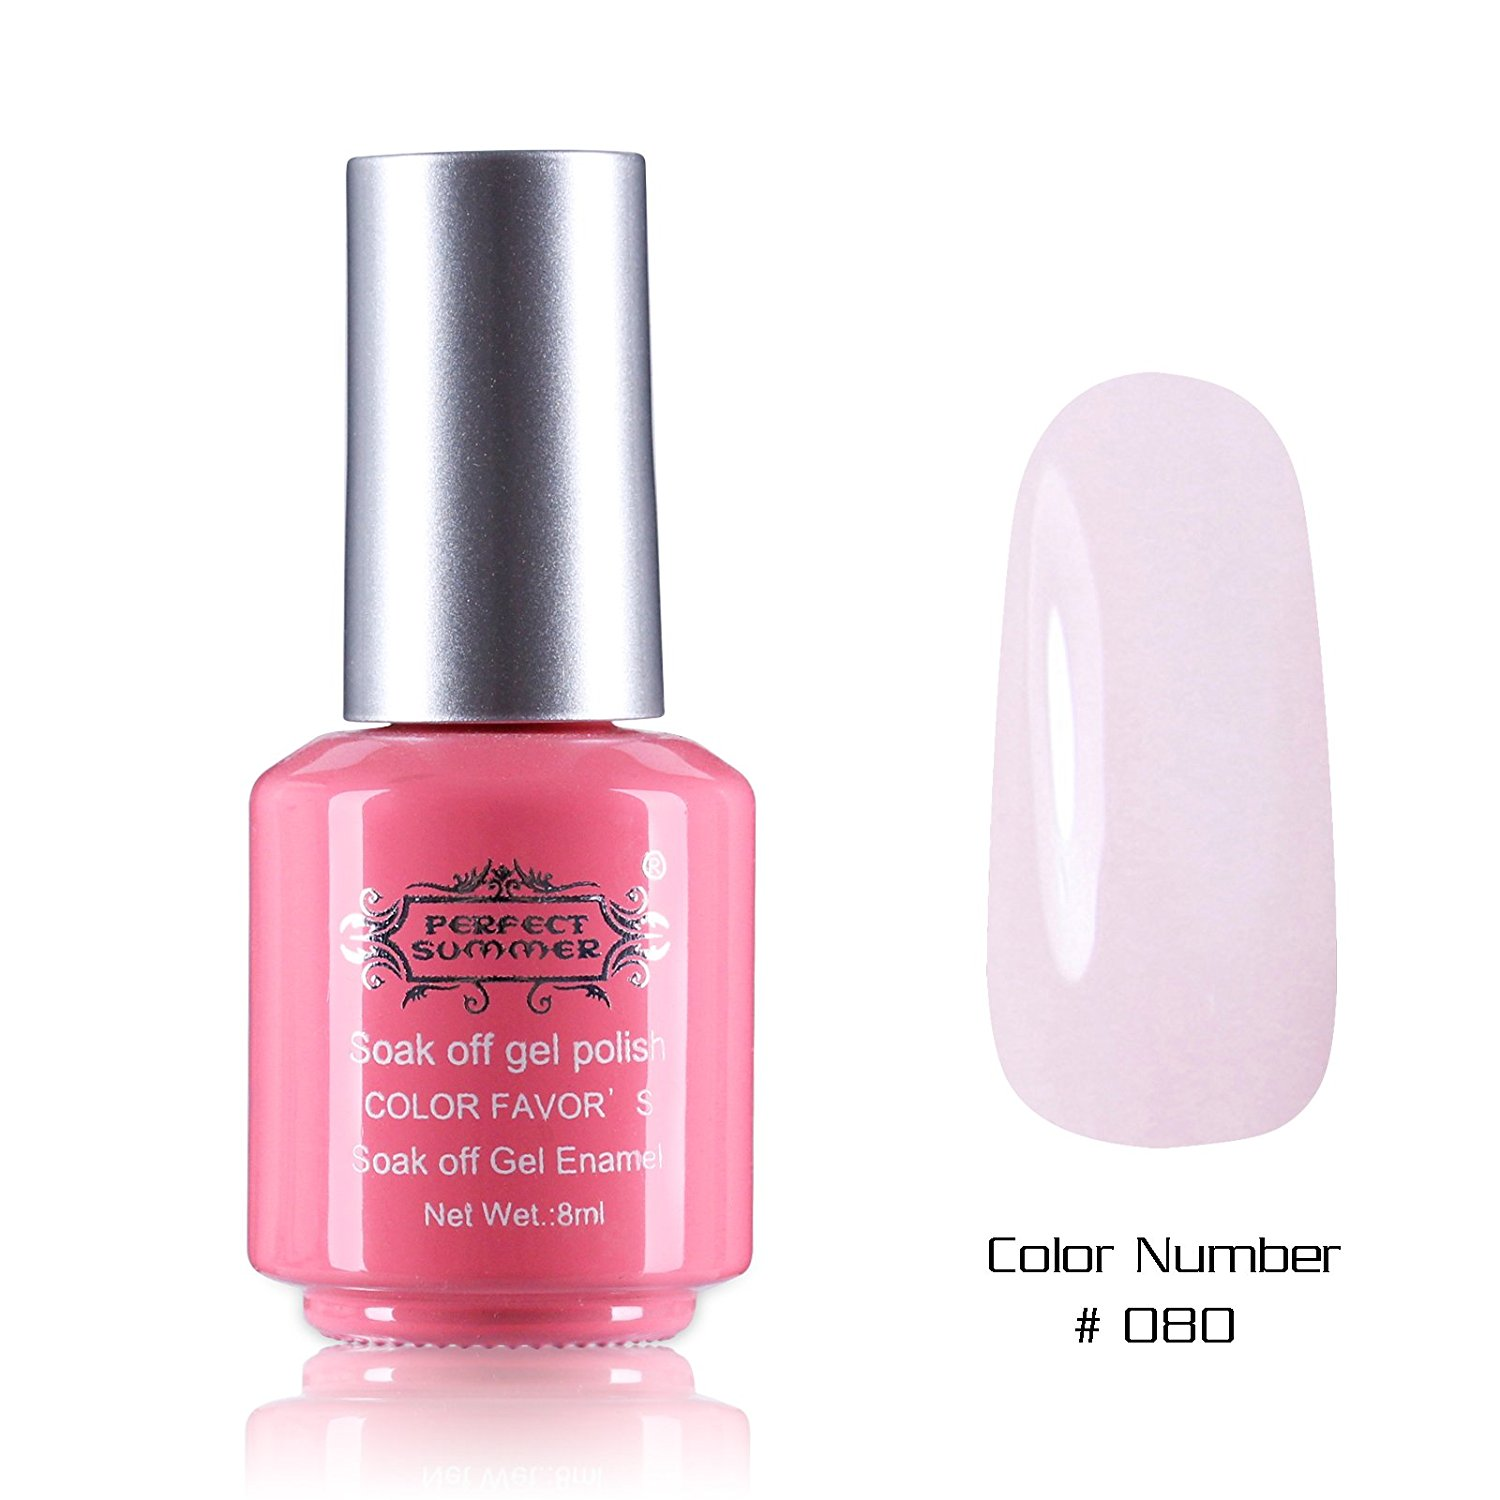 Perfect Summer Nails Painting Art Salon Decoration Gift 8ml Gel Nails Polish UV Led Light Soak Off Creative French Manicure Teens Nails Lacquers Varnish #80 nude pink